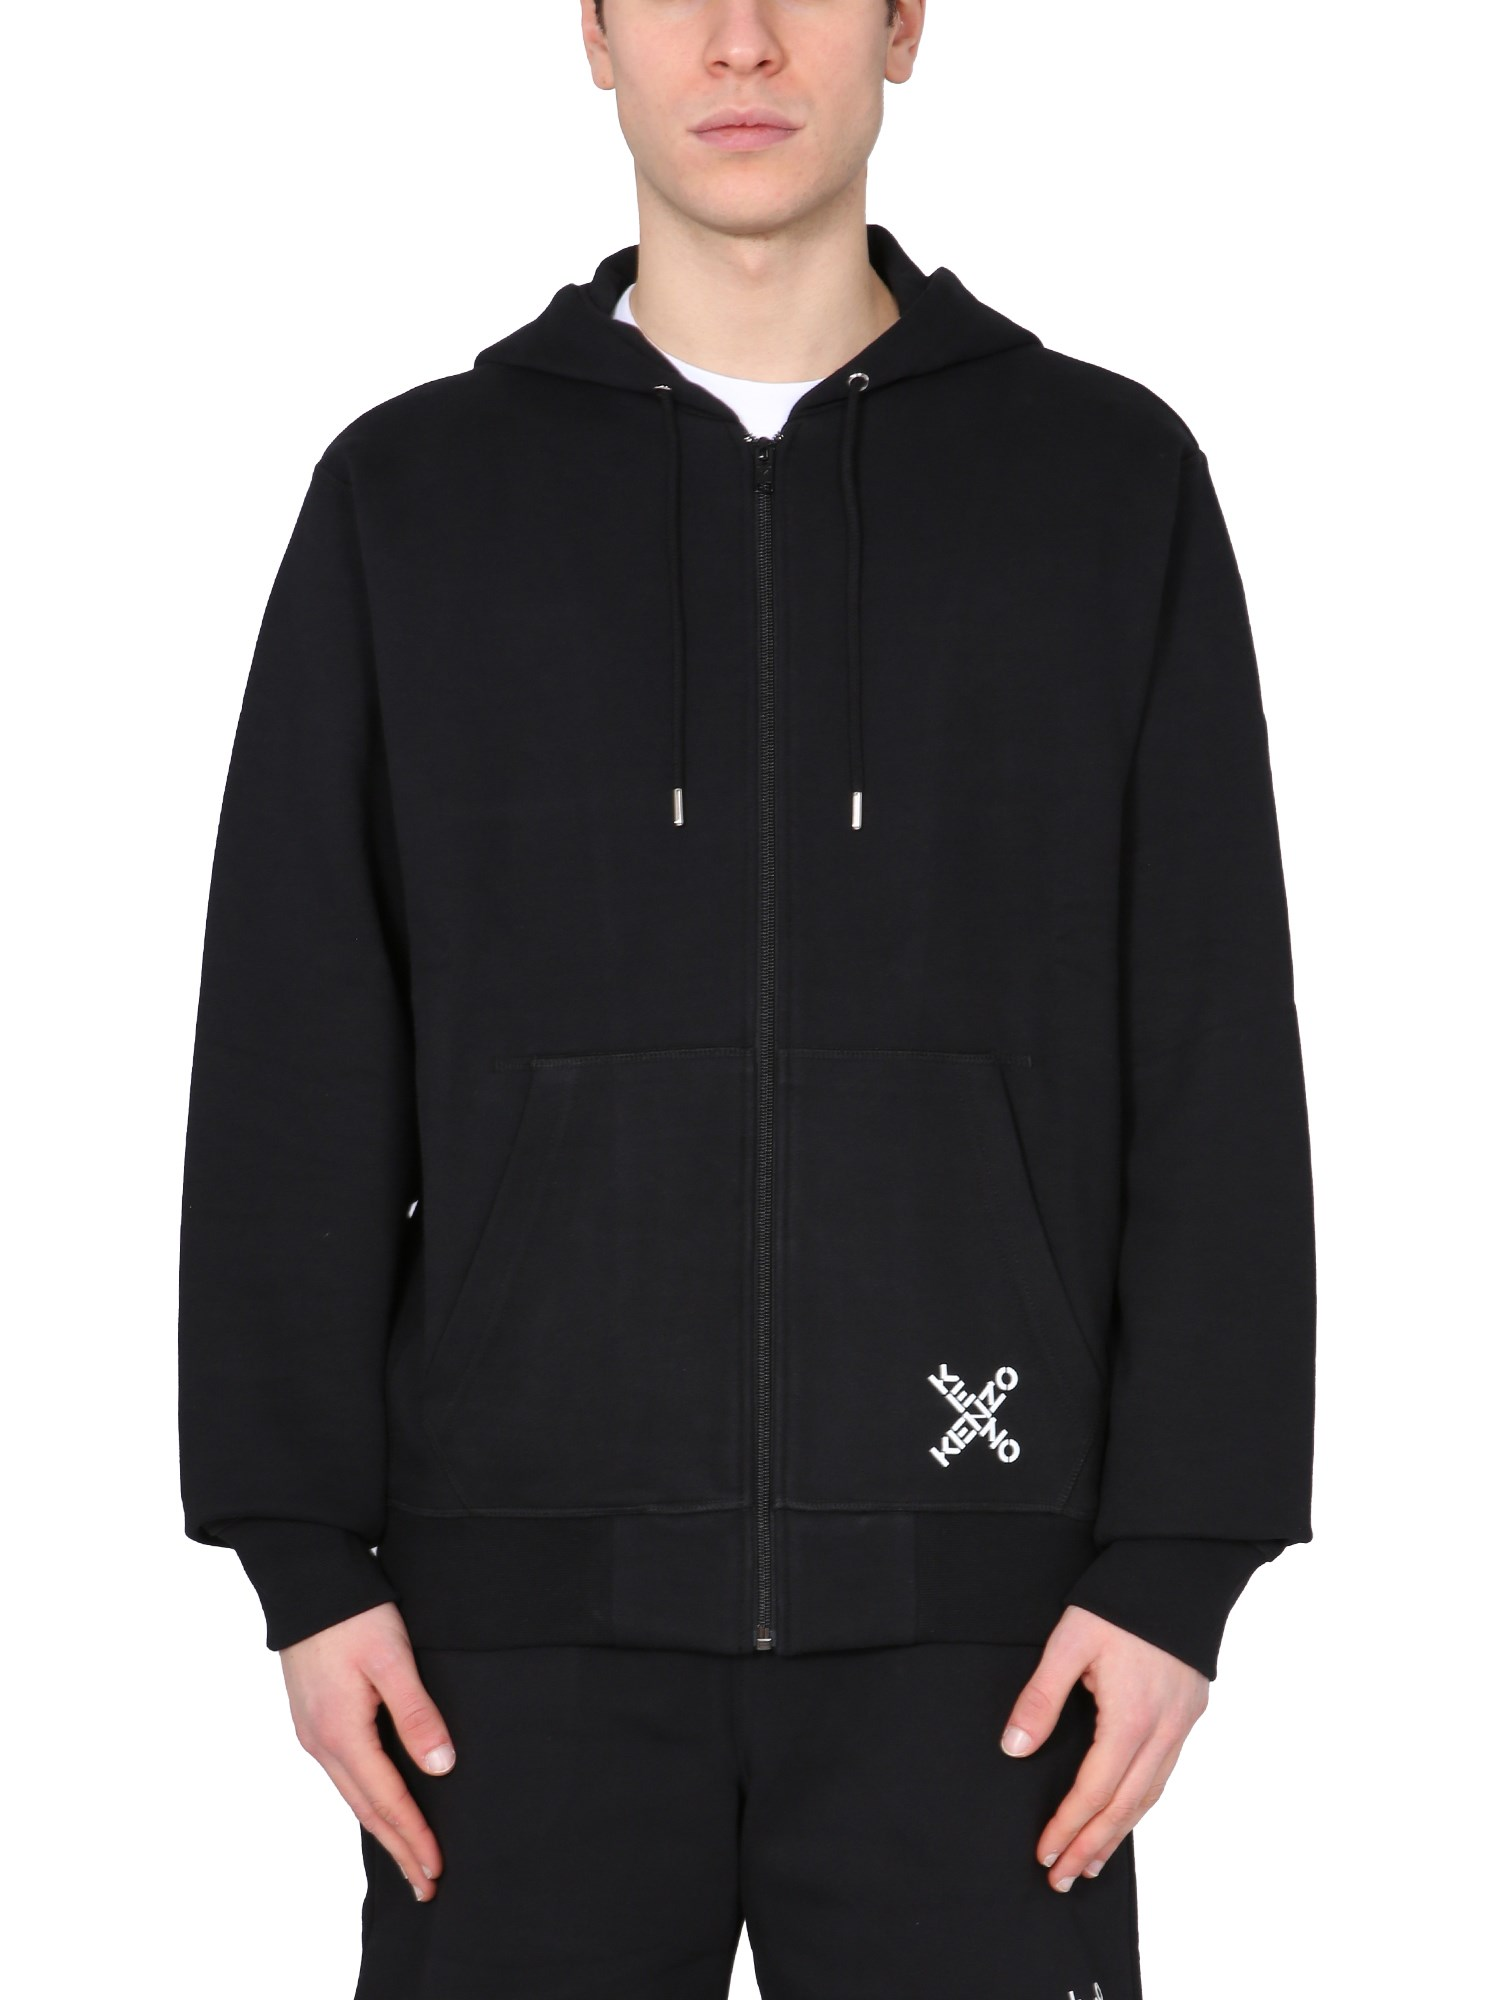 kenzo hooded sweatshirt with zip